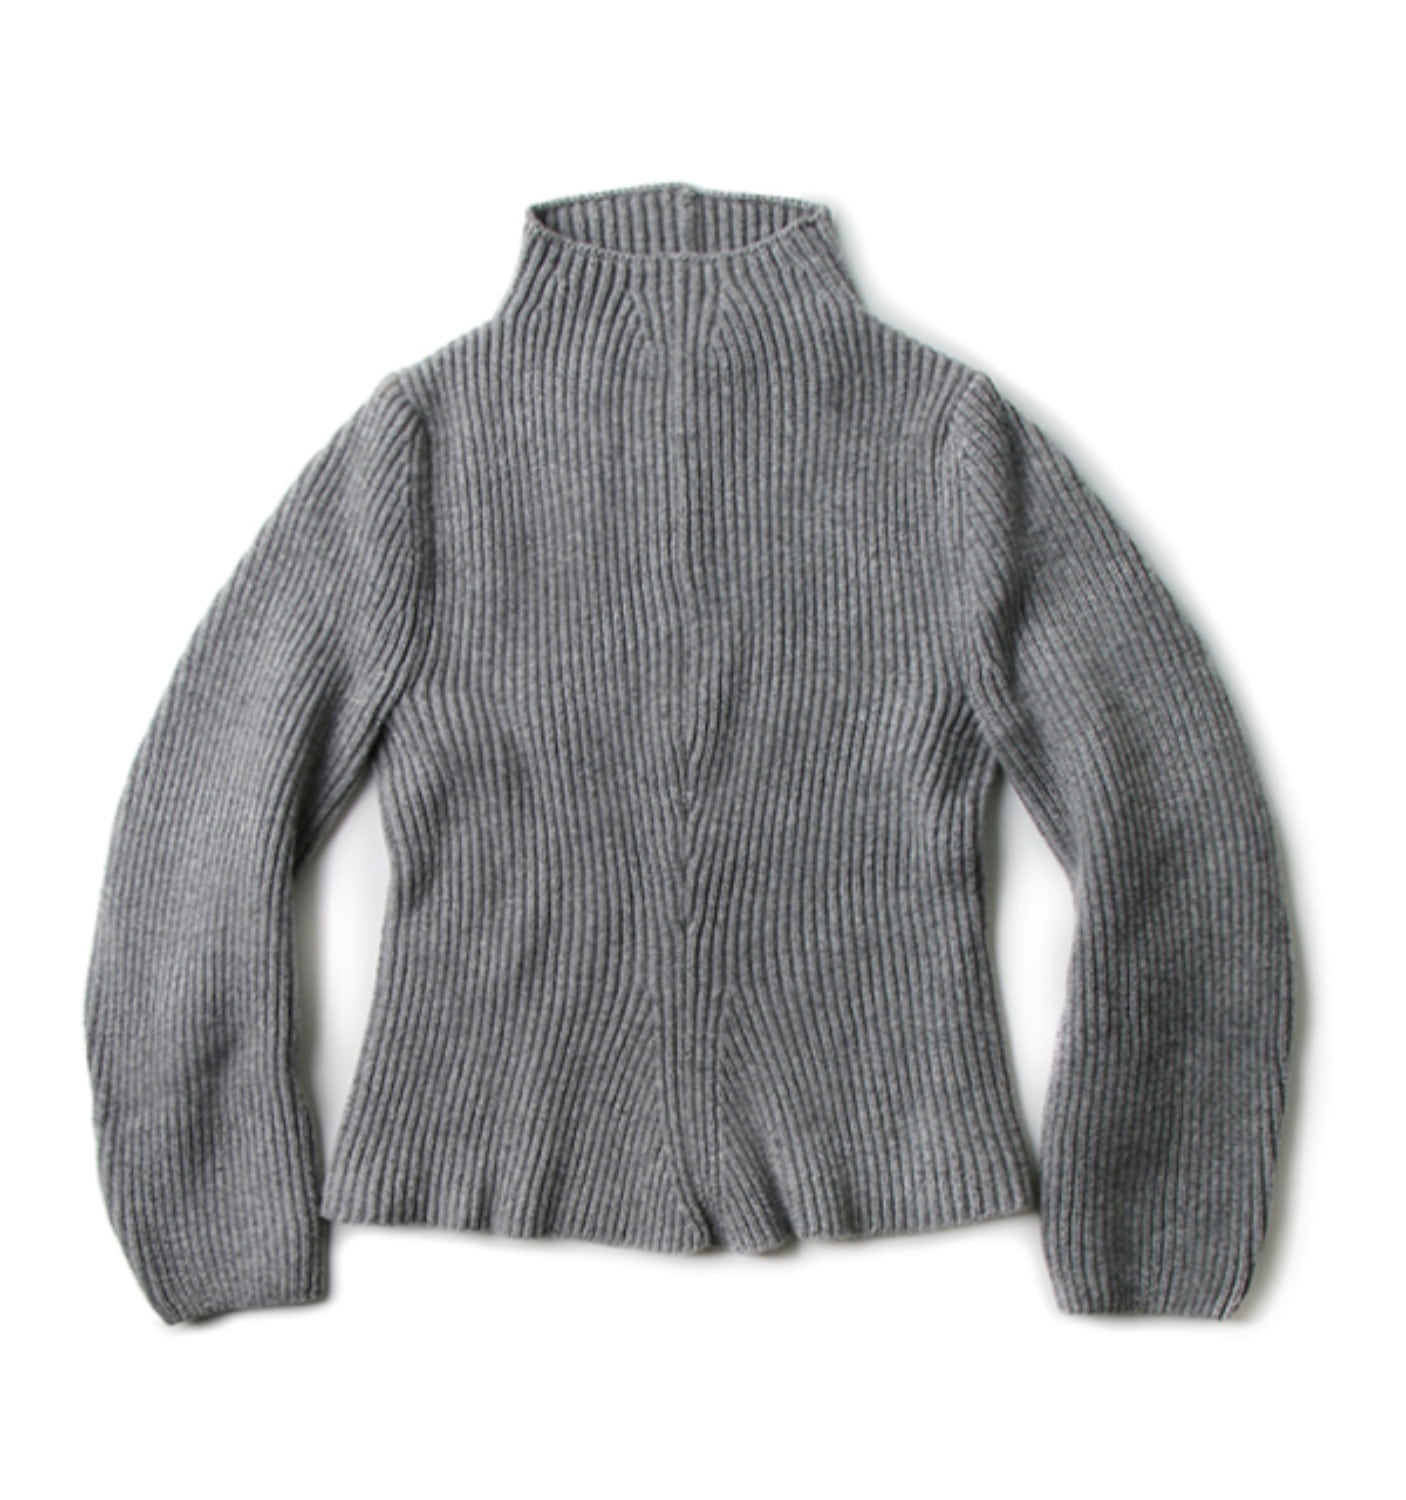 K1205 rounded sleeve chunky turtleneck LIGHT GREY